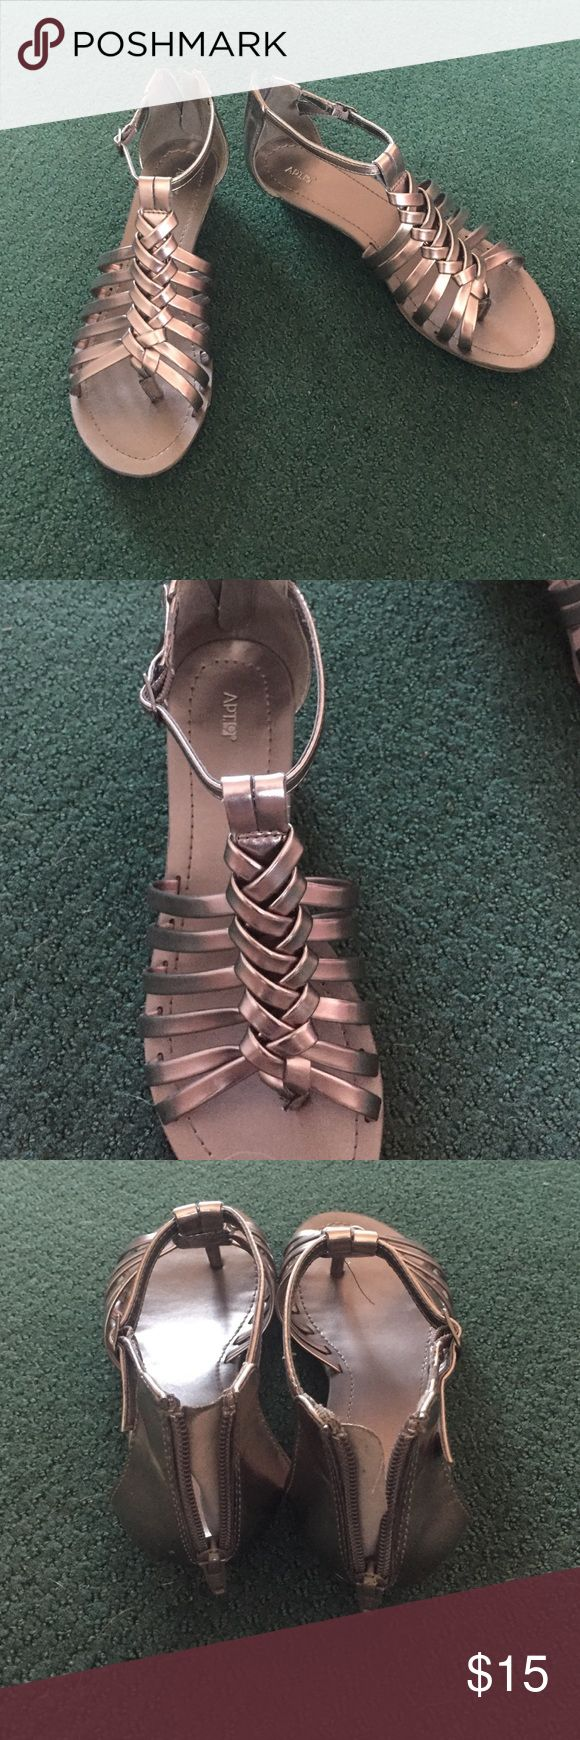 Pewter Sandals Barely worn pewter sandals Apt. 9 Shoes Sandals